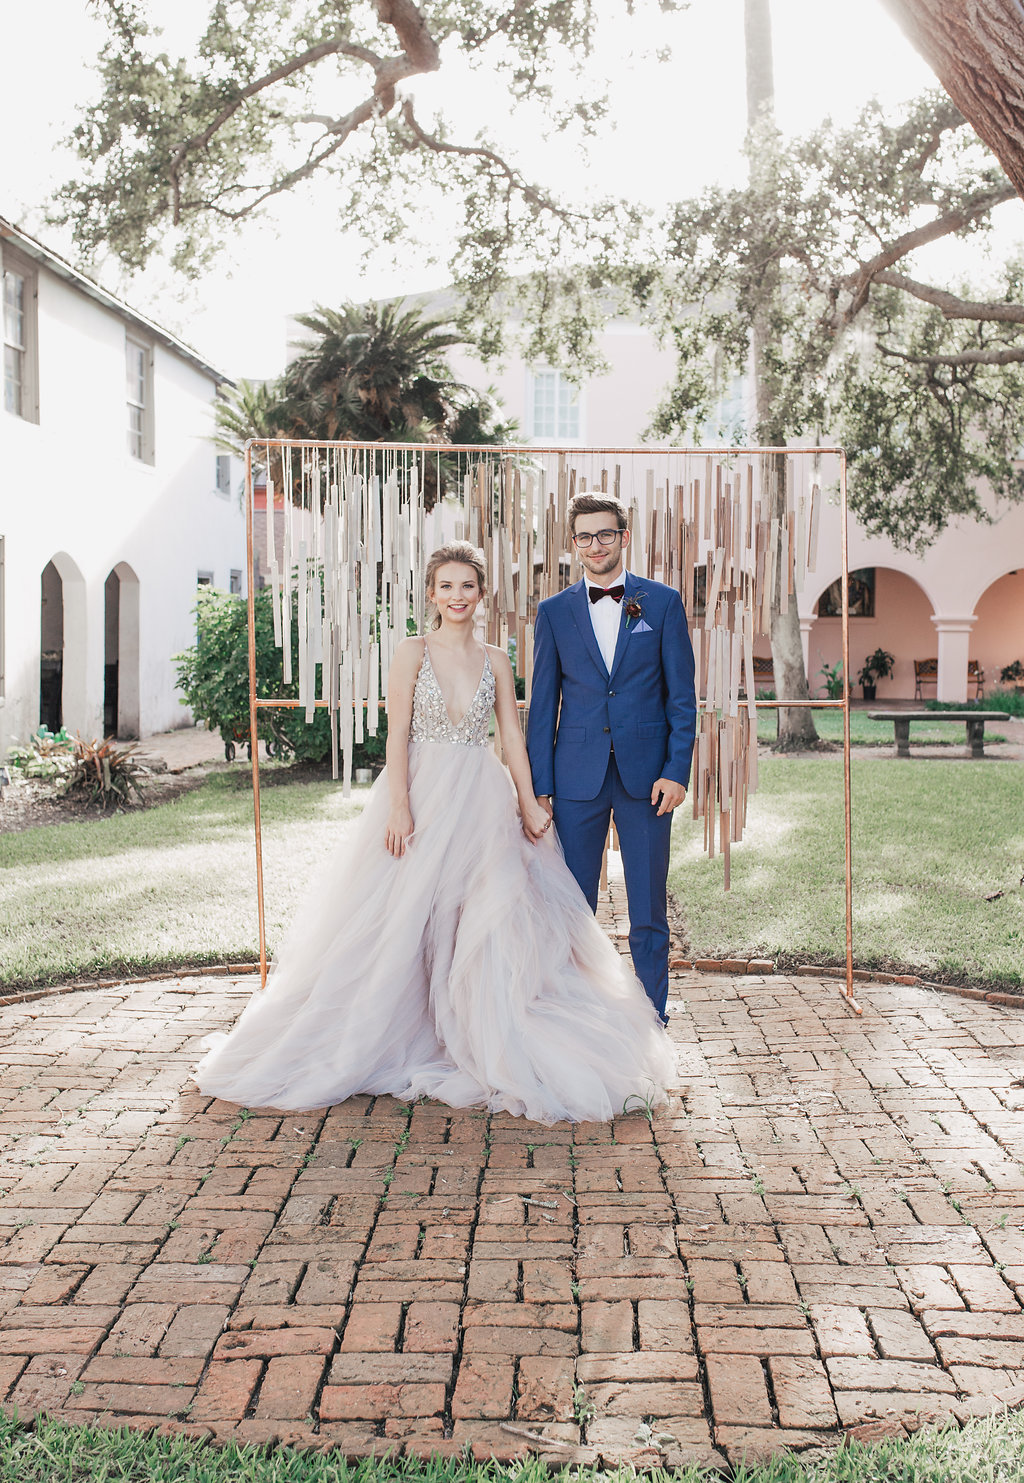 Jewel Toned Wedding Ideas With A Surprise Proposal Photo By Alondra Vega Photography Http